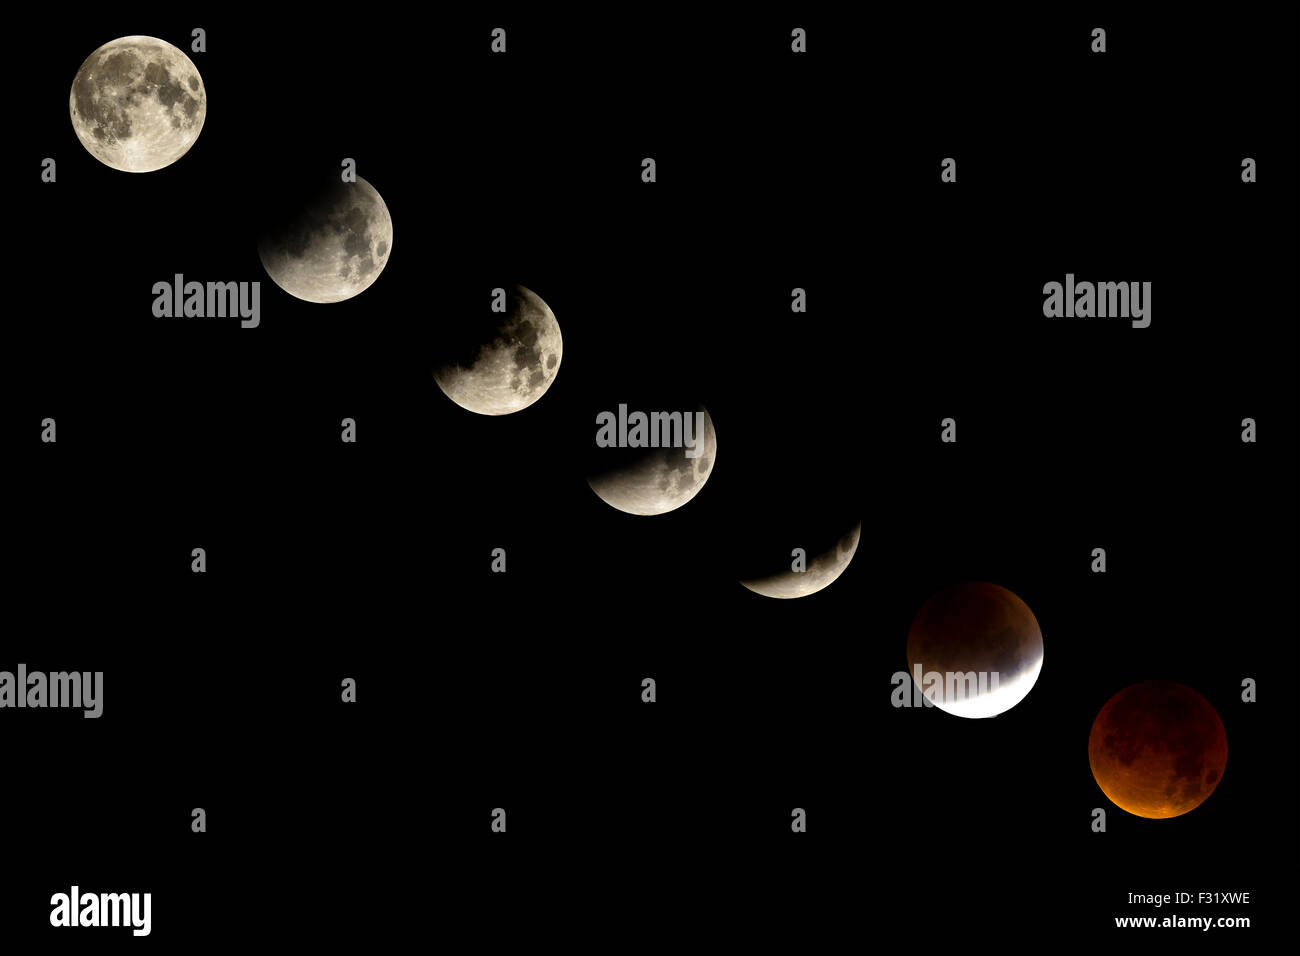 England, UK. 27th September, 2015. Lunar eclipse called bloodmoon showing the phases of eclipse  Credit:Andy Myatt/Alamy - Stock Image